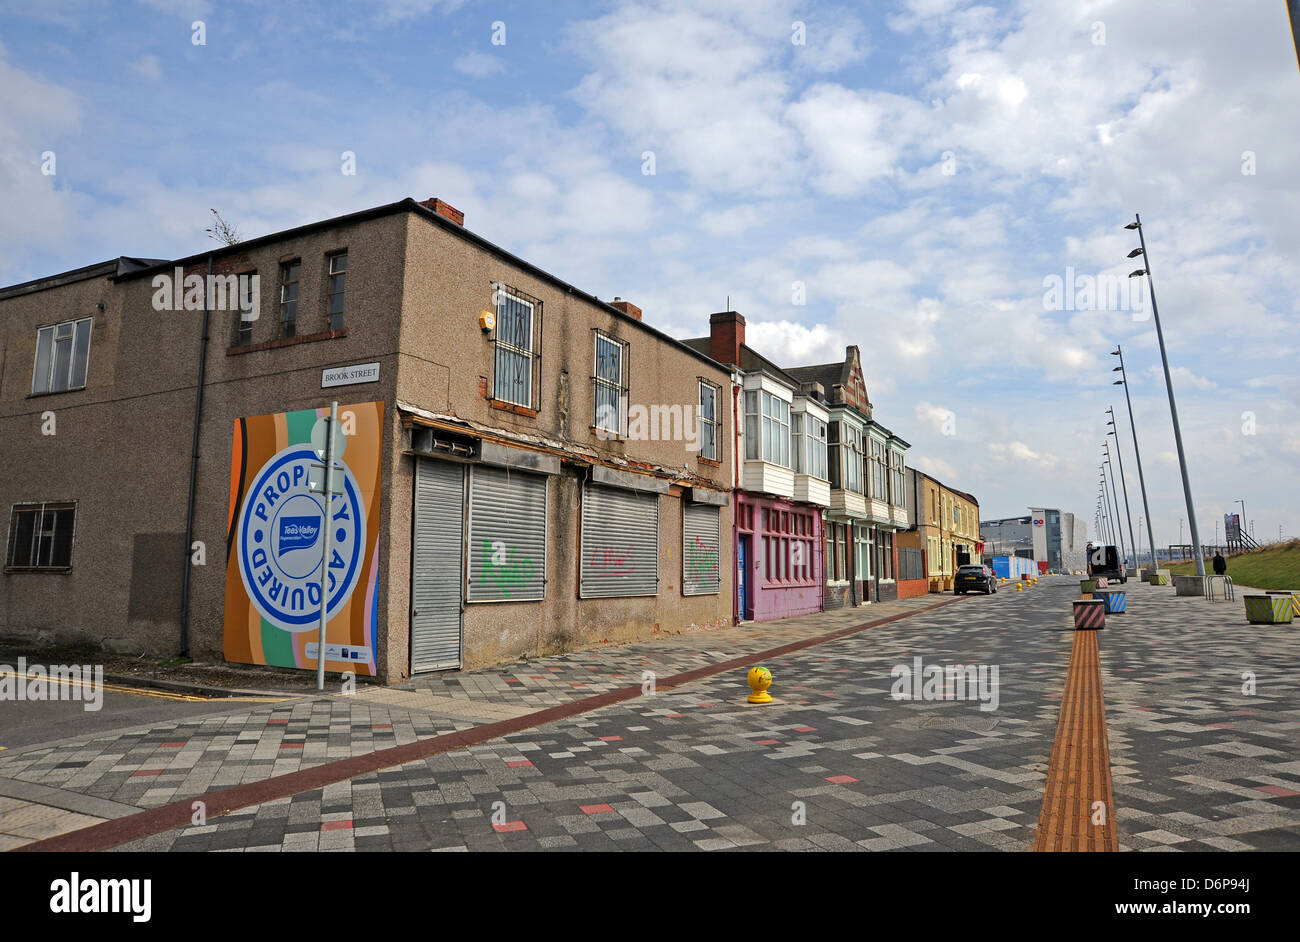 Derelict empty closed buildings ready for redevelopment Middlesbrough Cleveland Teeside UK - Stock Image